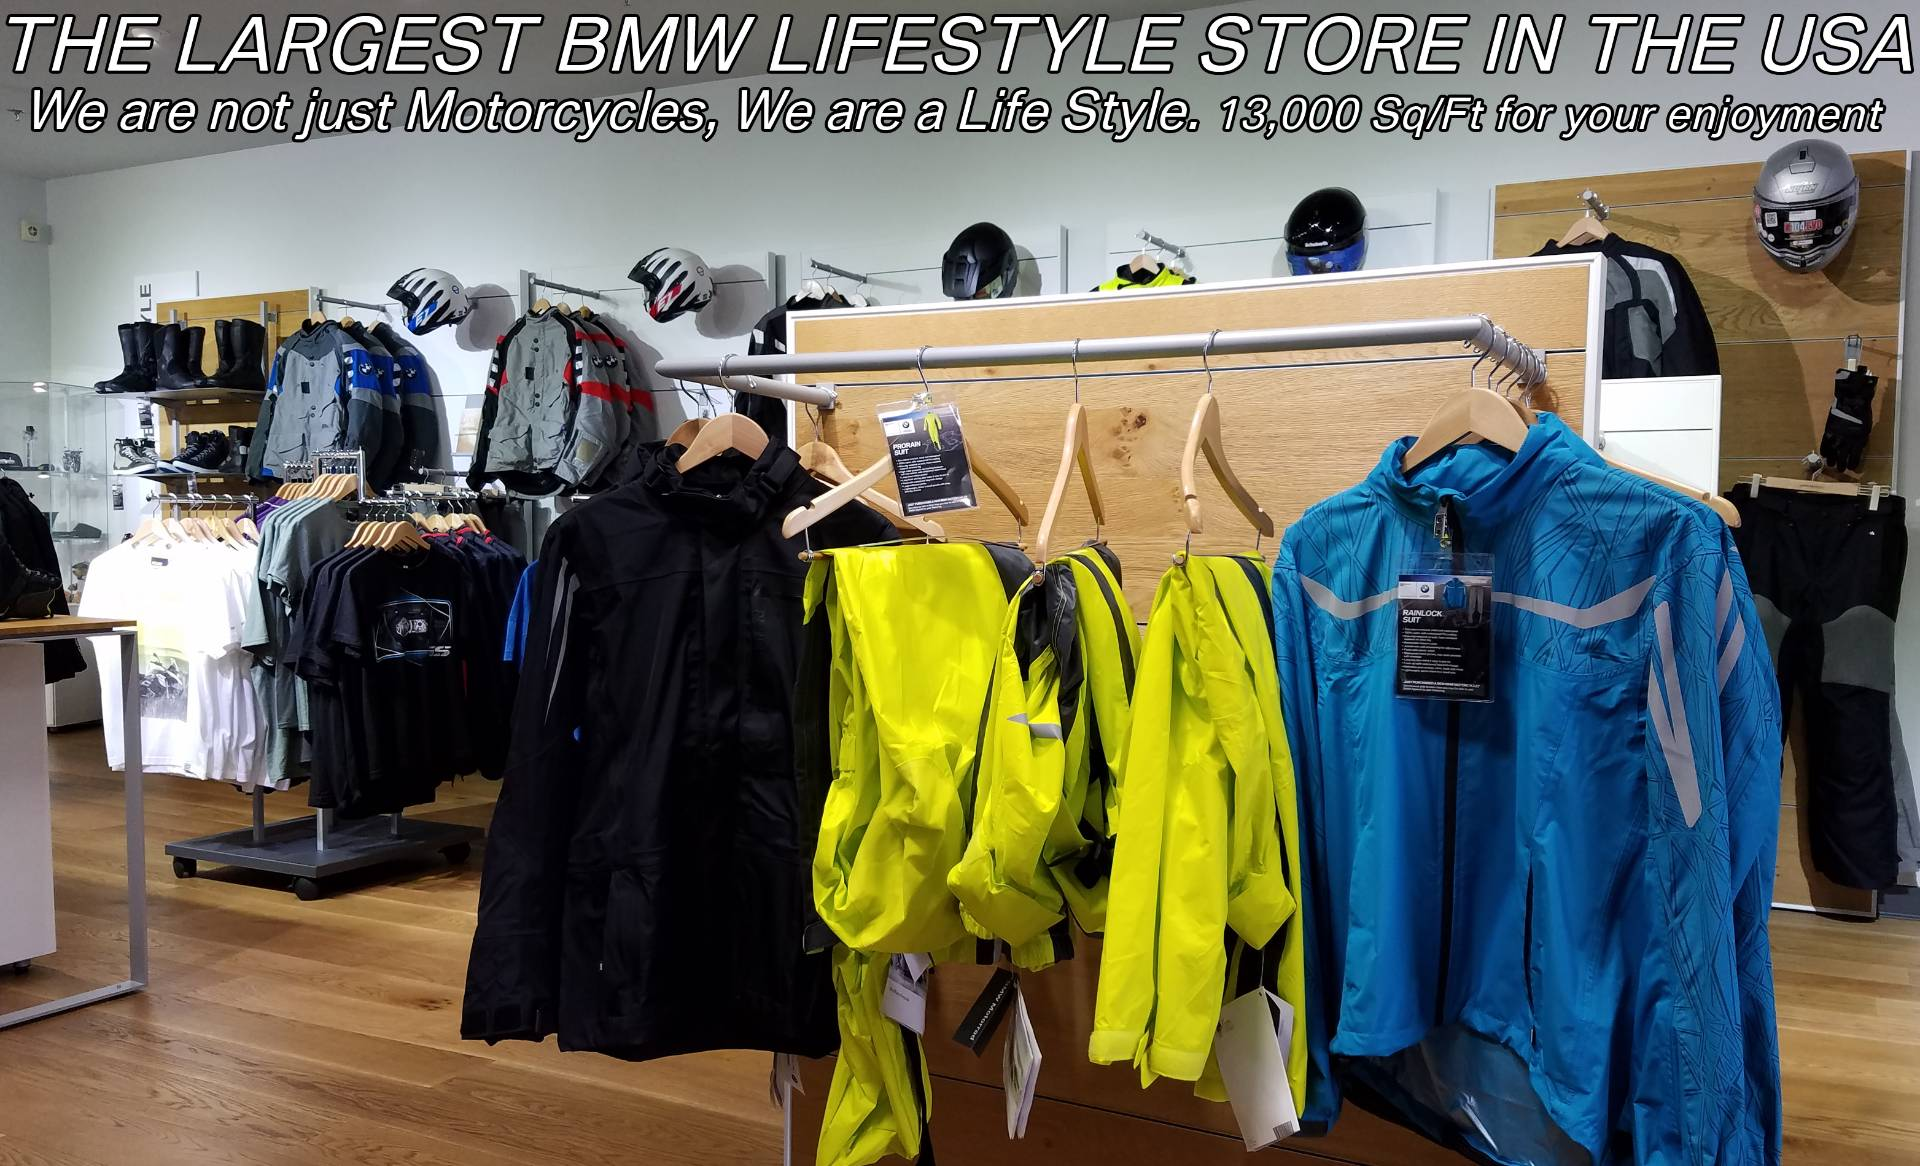 New 2019 BMW R 1250 GS for sale, New BMW R 1250GS, BMW R1250GS for sale, 1250GS, R1250GS, BMW Motorcycles of Miami, Motorcycles of Miami. Motorcycles Miami - Photo 61